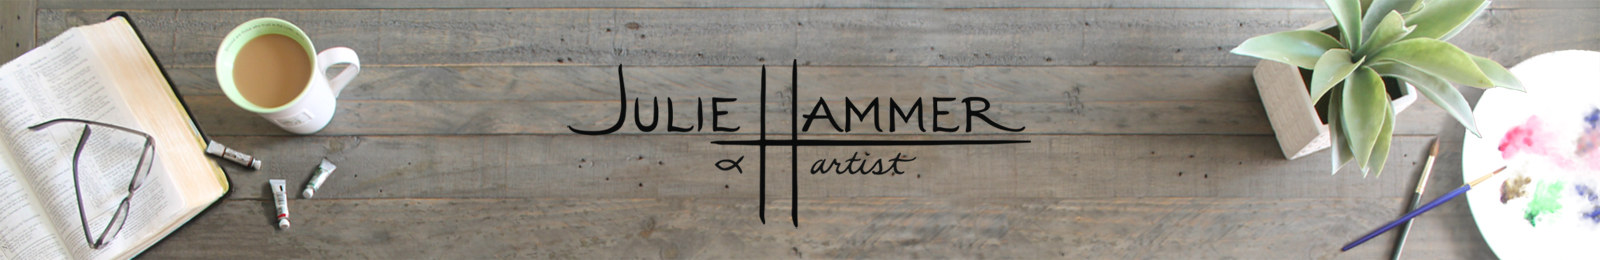 Header image for Julie Hammer, artist